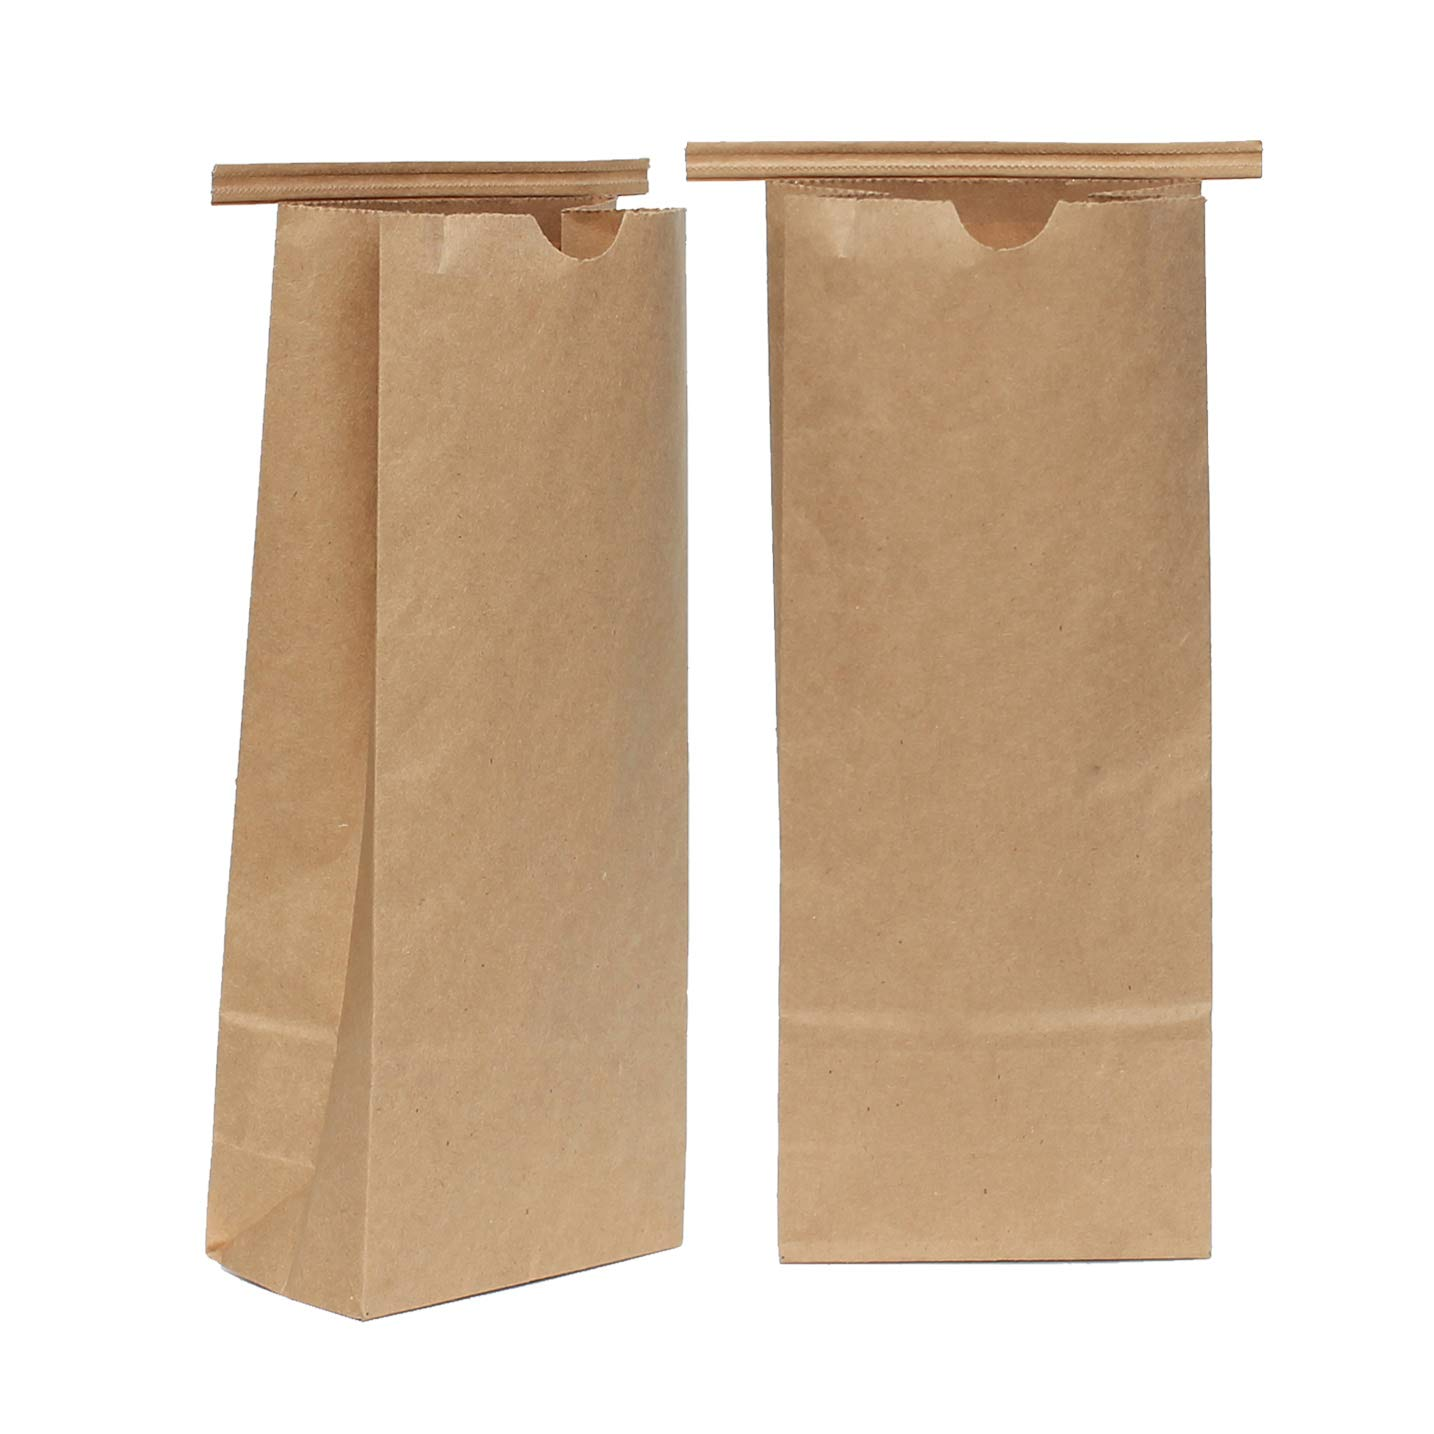 Global Paper Tin Tie Bags Market 2020 Industry Outlook – Pacific Bag, Inc.,  Morgan Chaney, LLC. – Bulletin Line